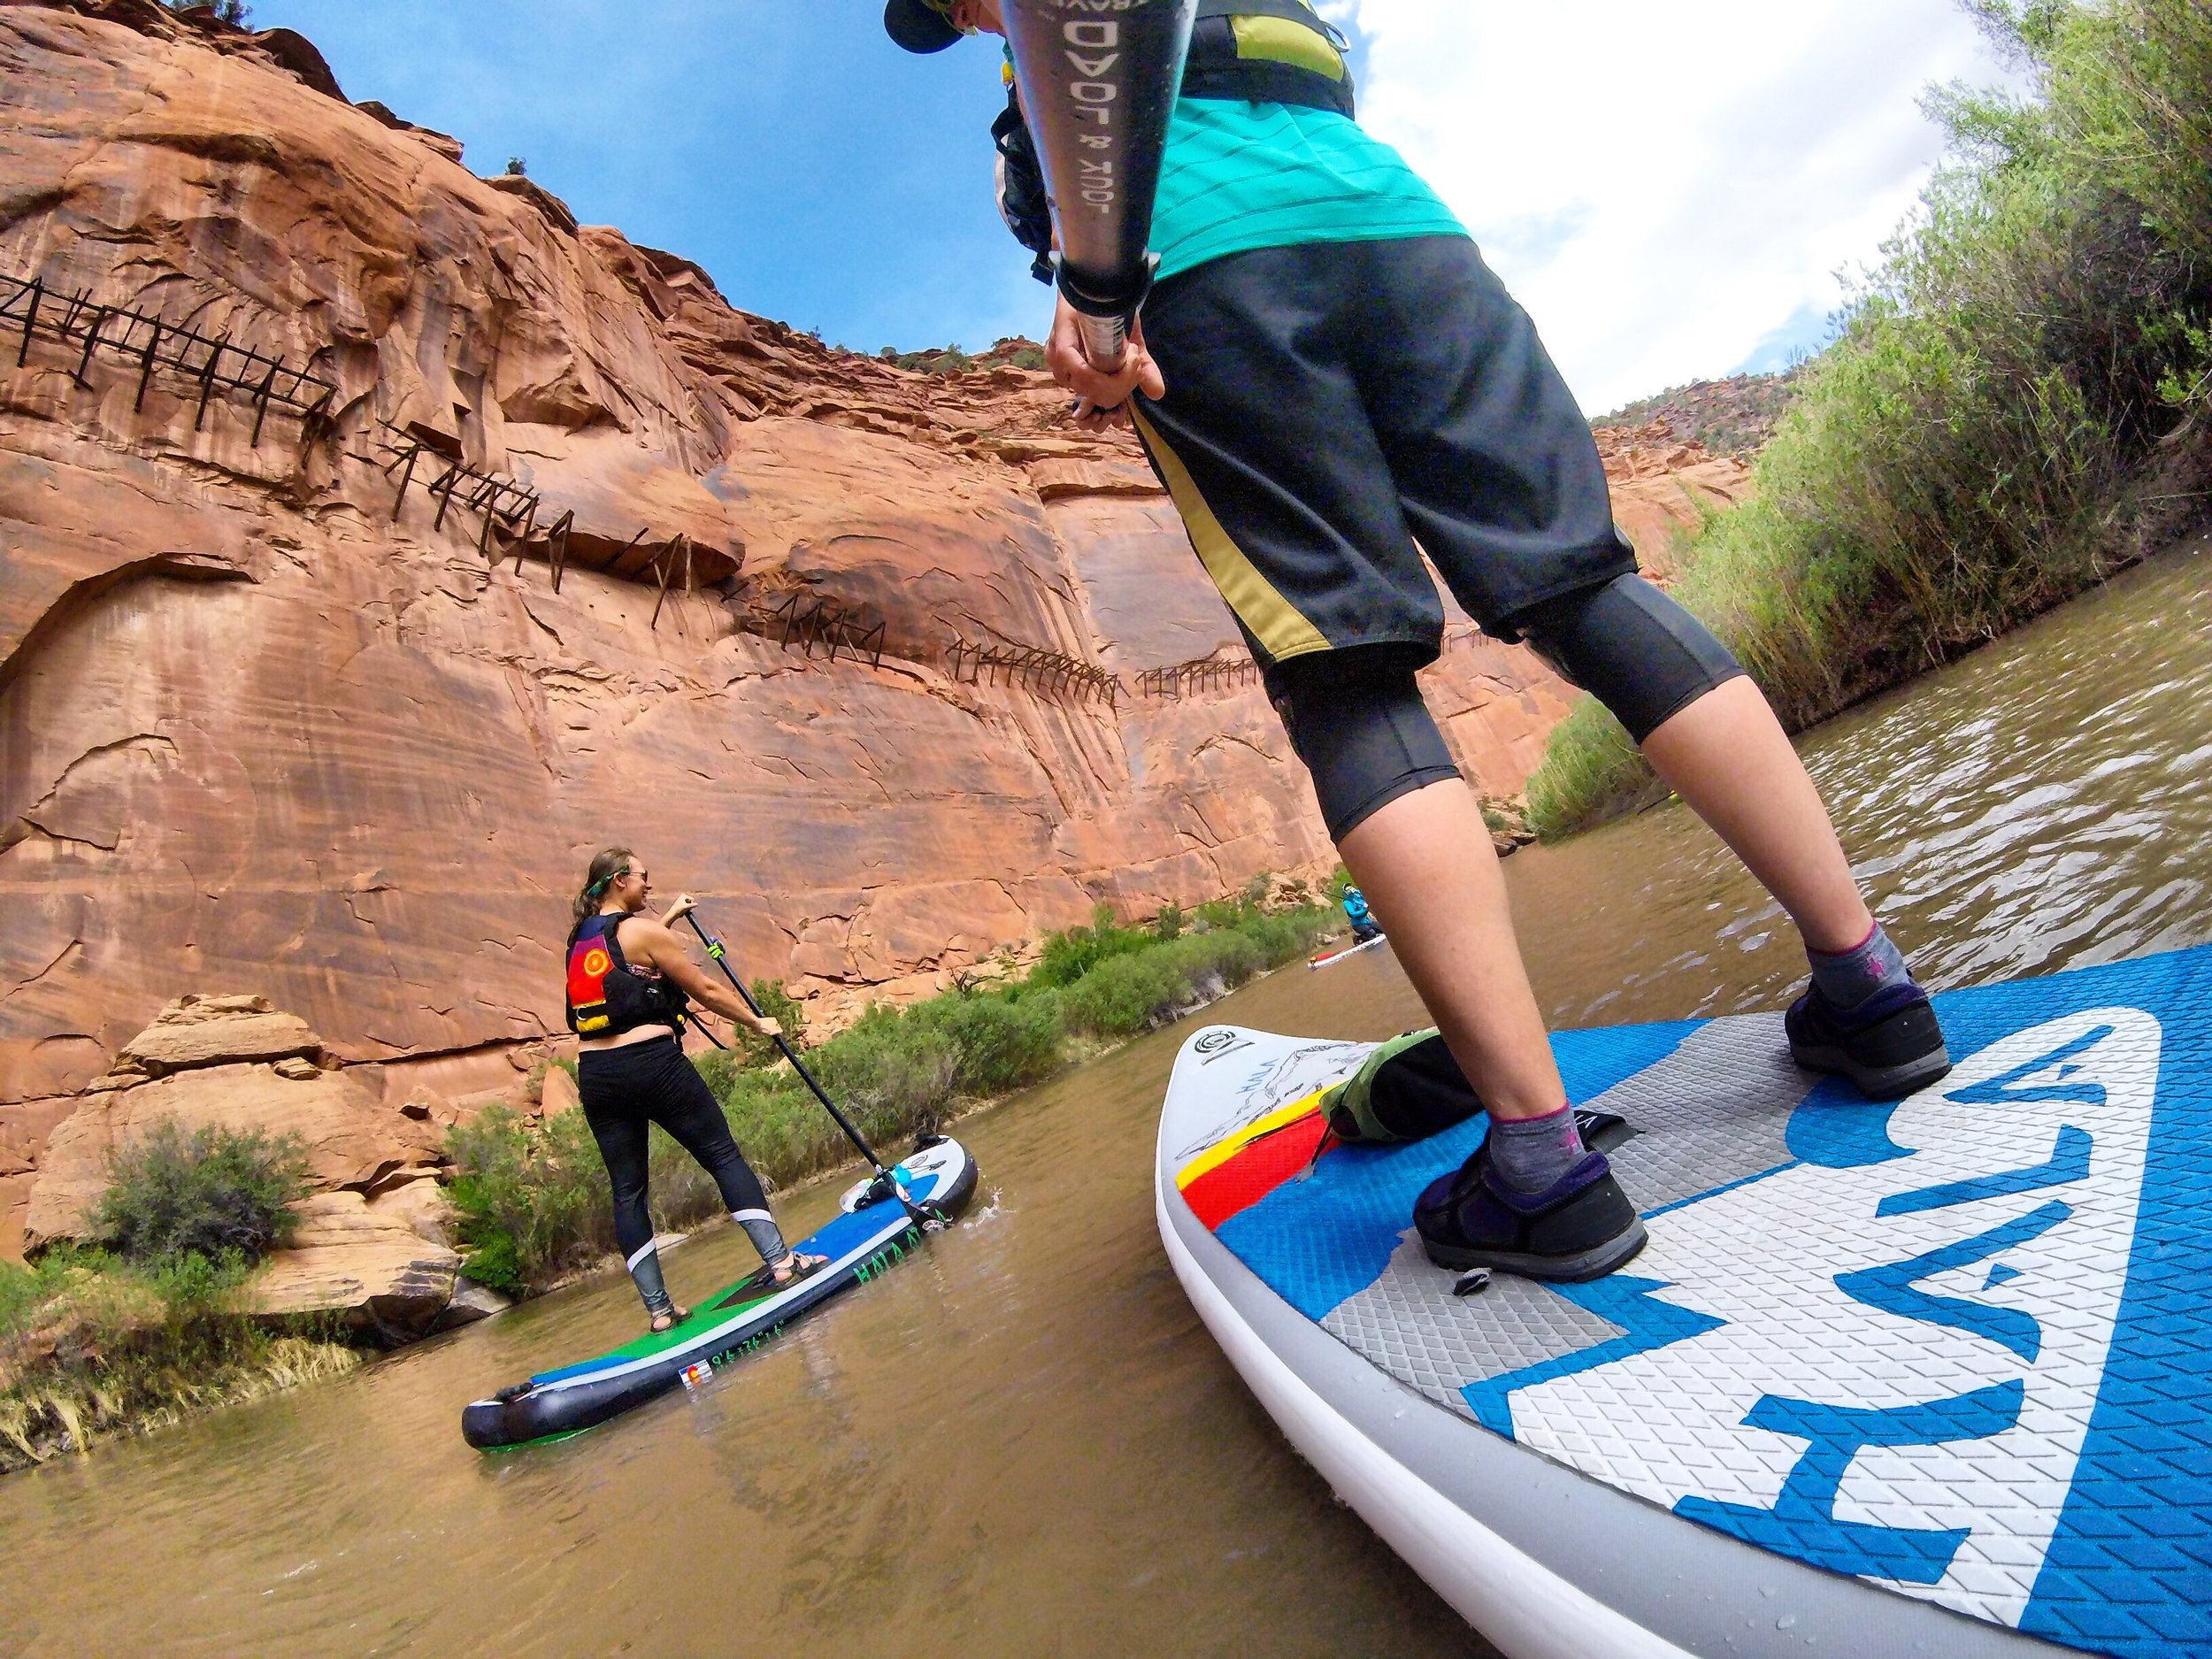 Stand up paddle boarding can take you places you never imagined before, like on the Dolores River under the historic Hanging Flume.